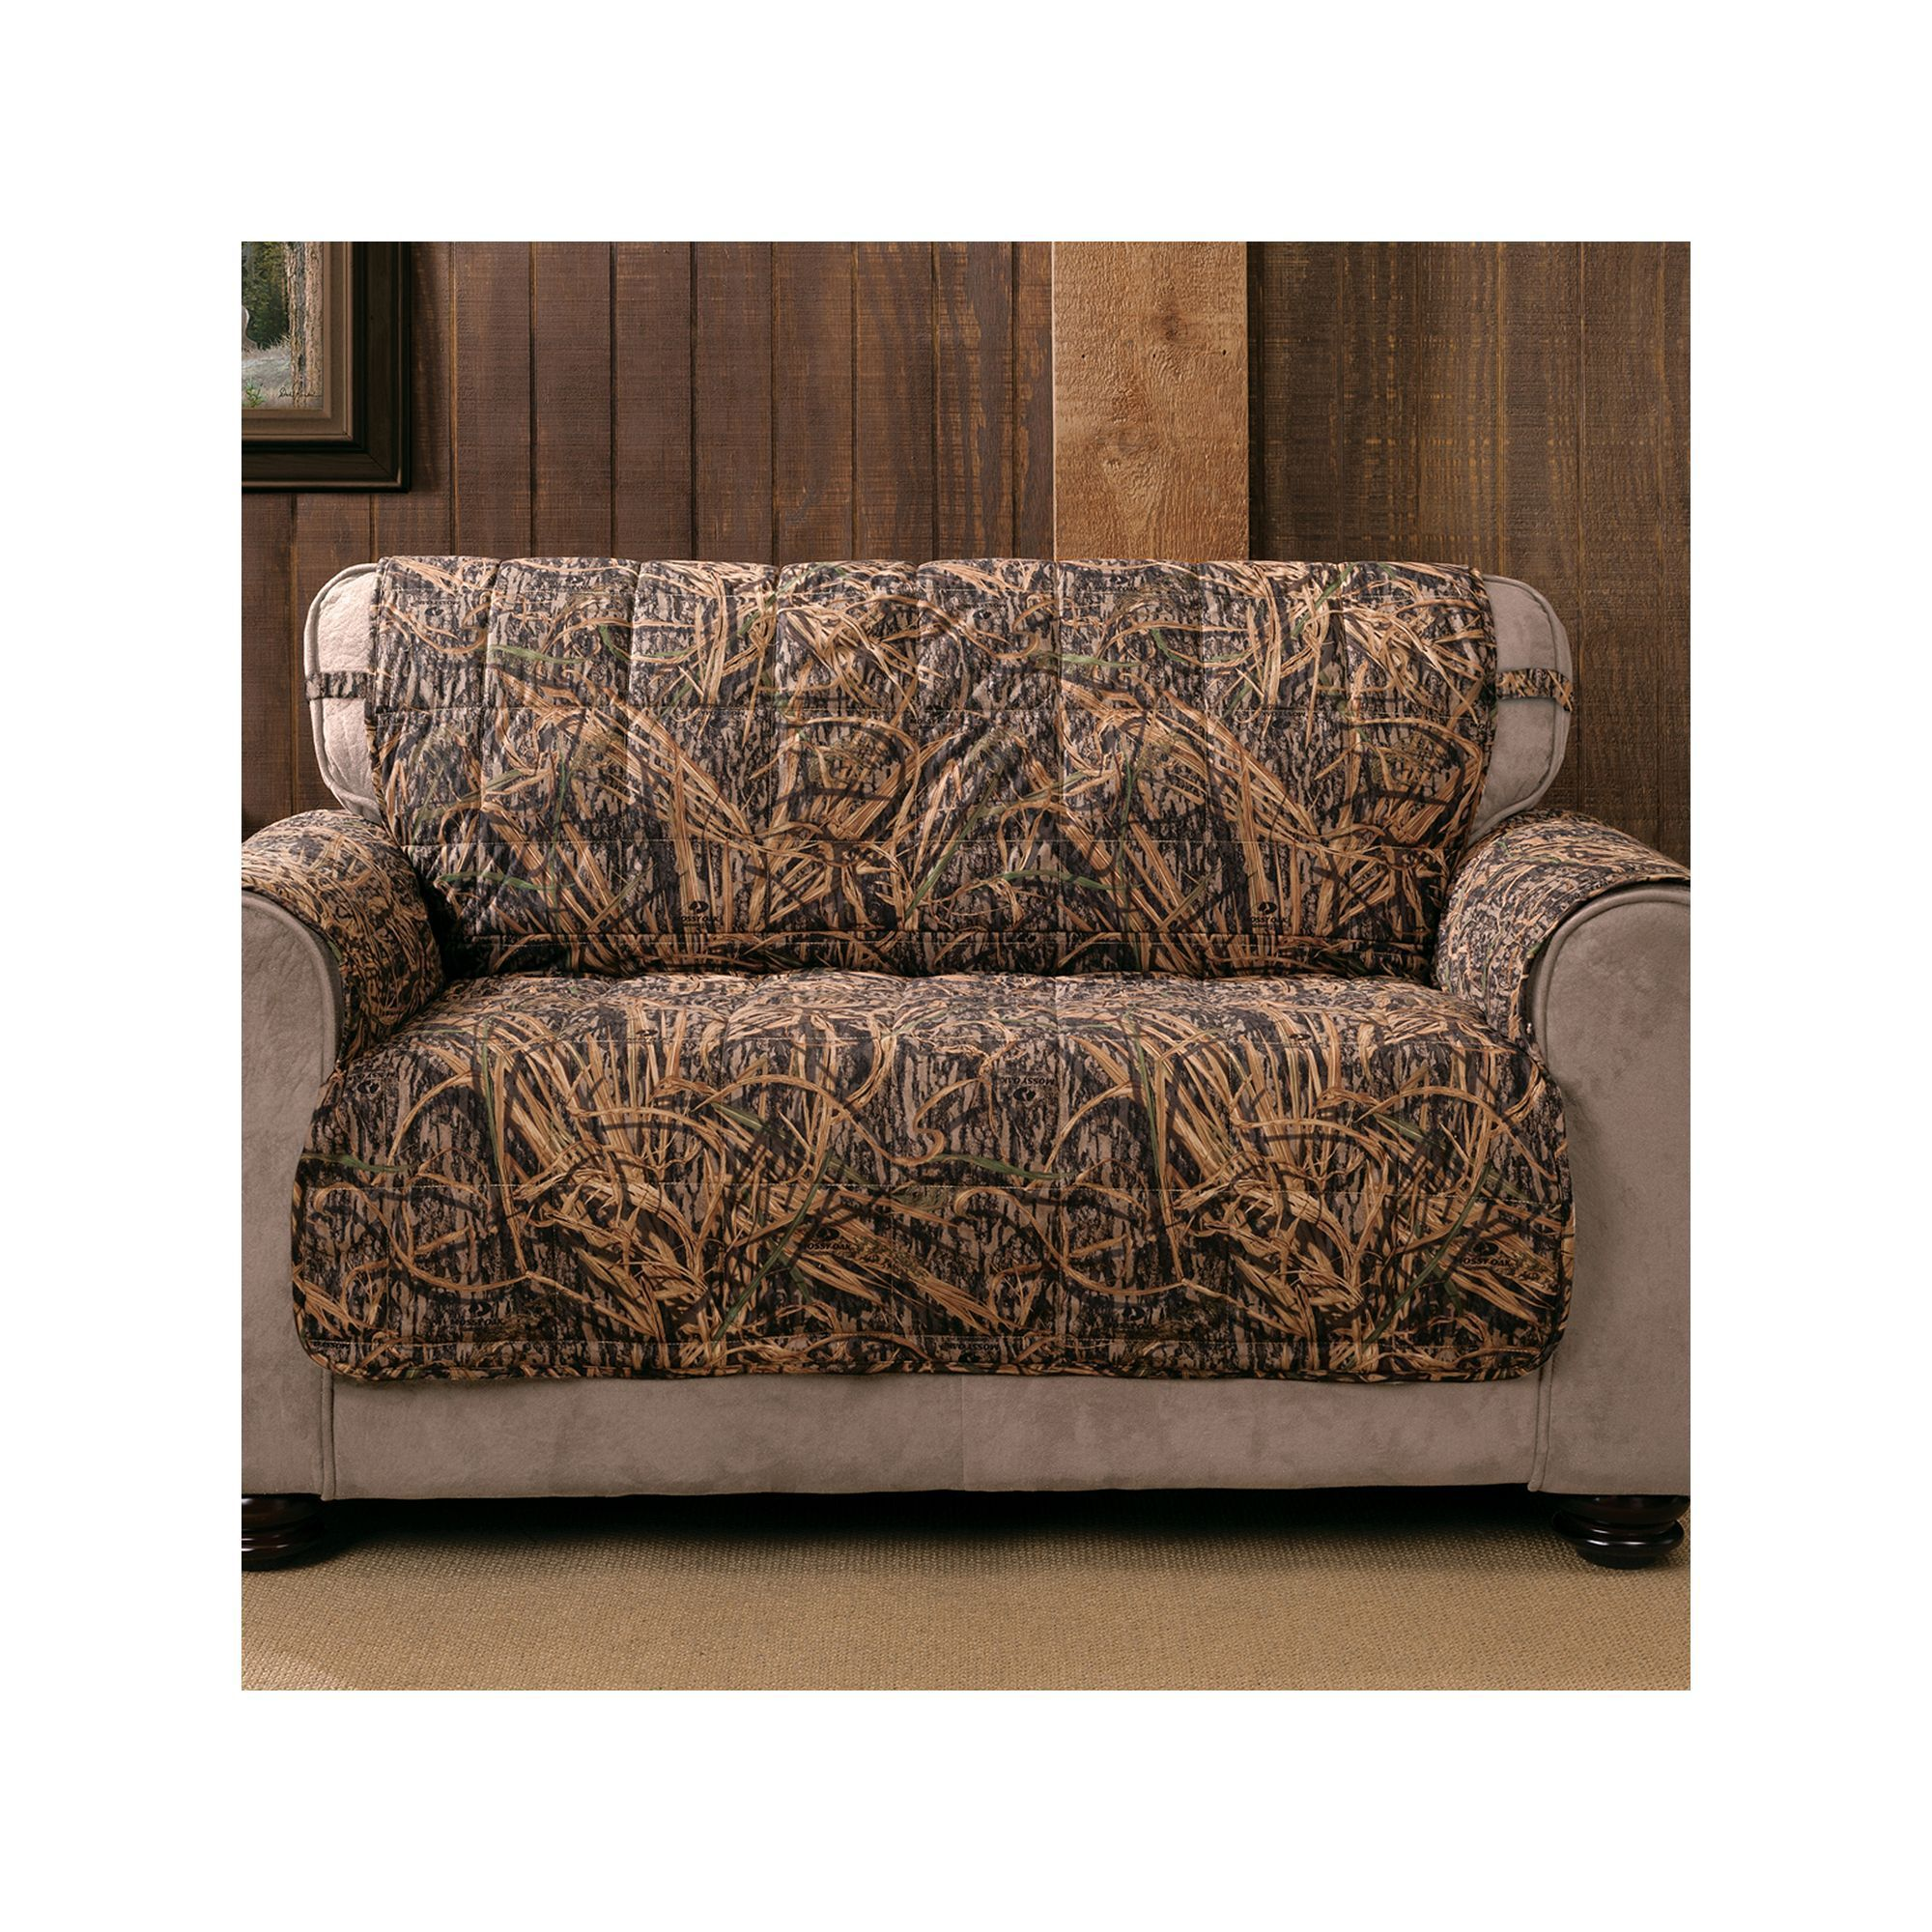 Best Mossy Oak Shadow Grass Camo Loveseat Protector Products 400 x 300